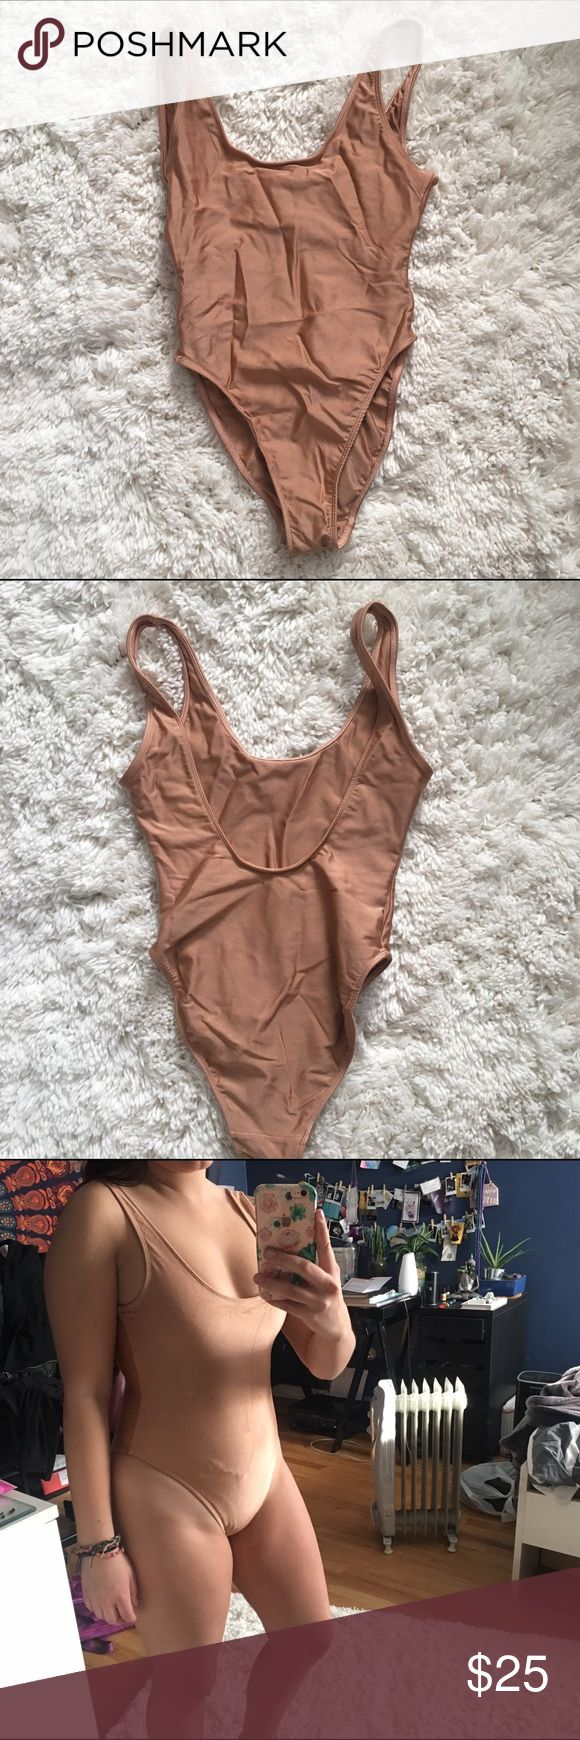 American Apparel nude one-piece swimsuit Literally such an awesome and trendy swimsuit from AA!!! Really pretty blush nude color. Made from a metallic-y tricot fabric. Low cut with a plunged scoop back. Unlined and not padded, but thick material. Fits A and B cup best since it is pretty tight. Also can be worn as a bodysuit with some shorts!! Sorry that it is so wrinkly in the pictures lol, will cool iron before shipping. American Apparel Swim One Pieces